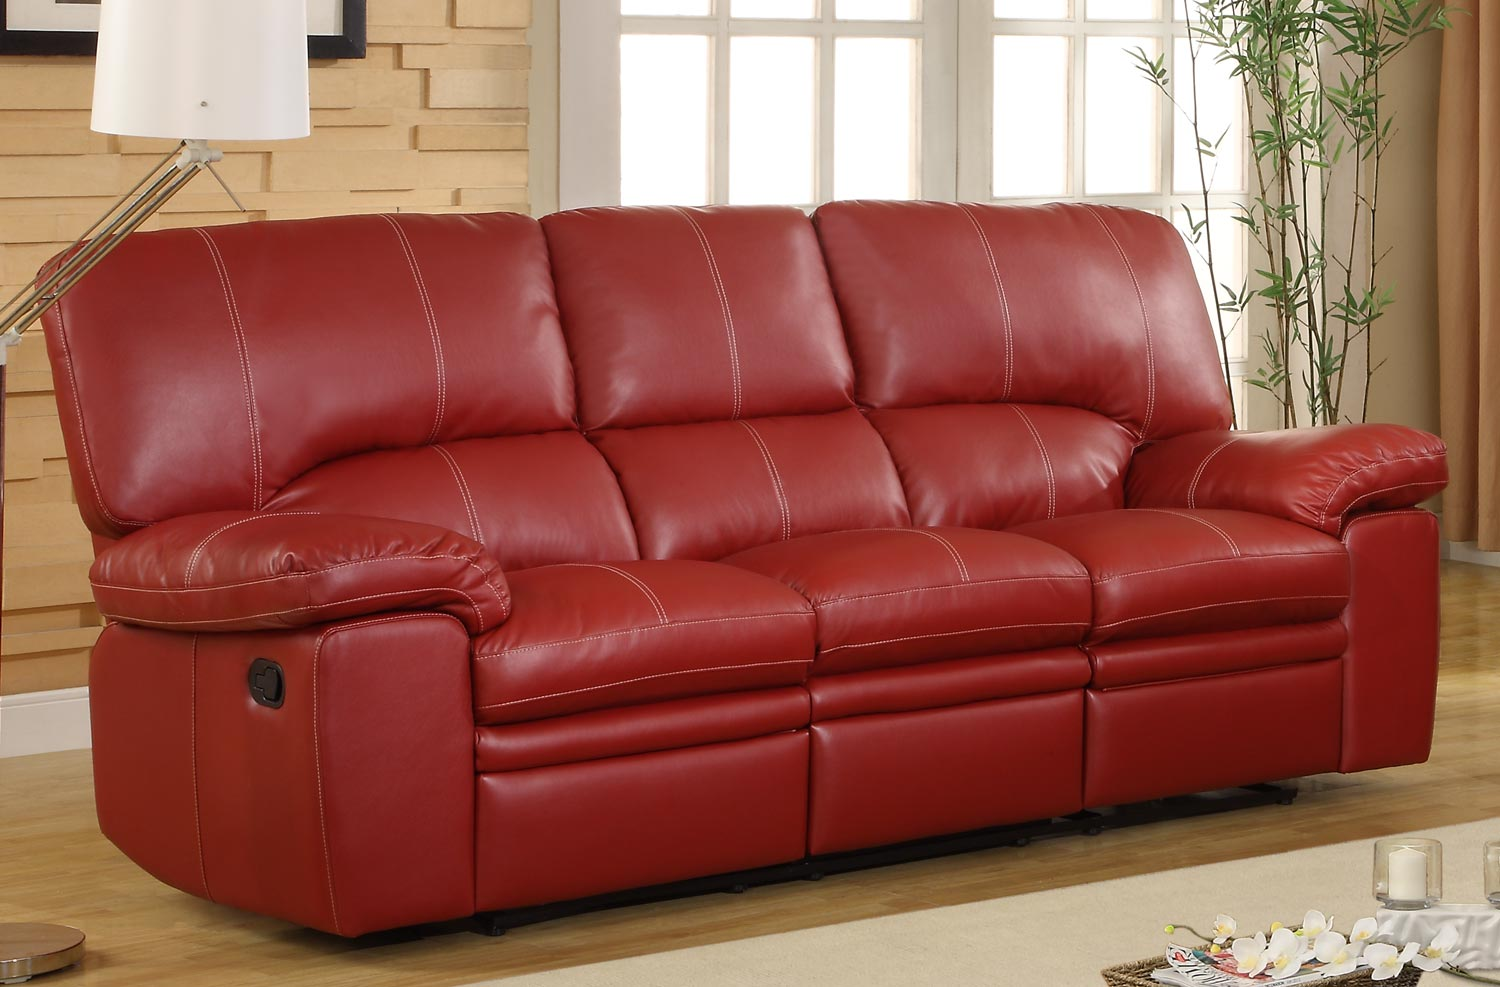 Homelegance kendrick double recliner sofa red bonded leather match 9611red 3